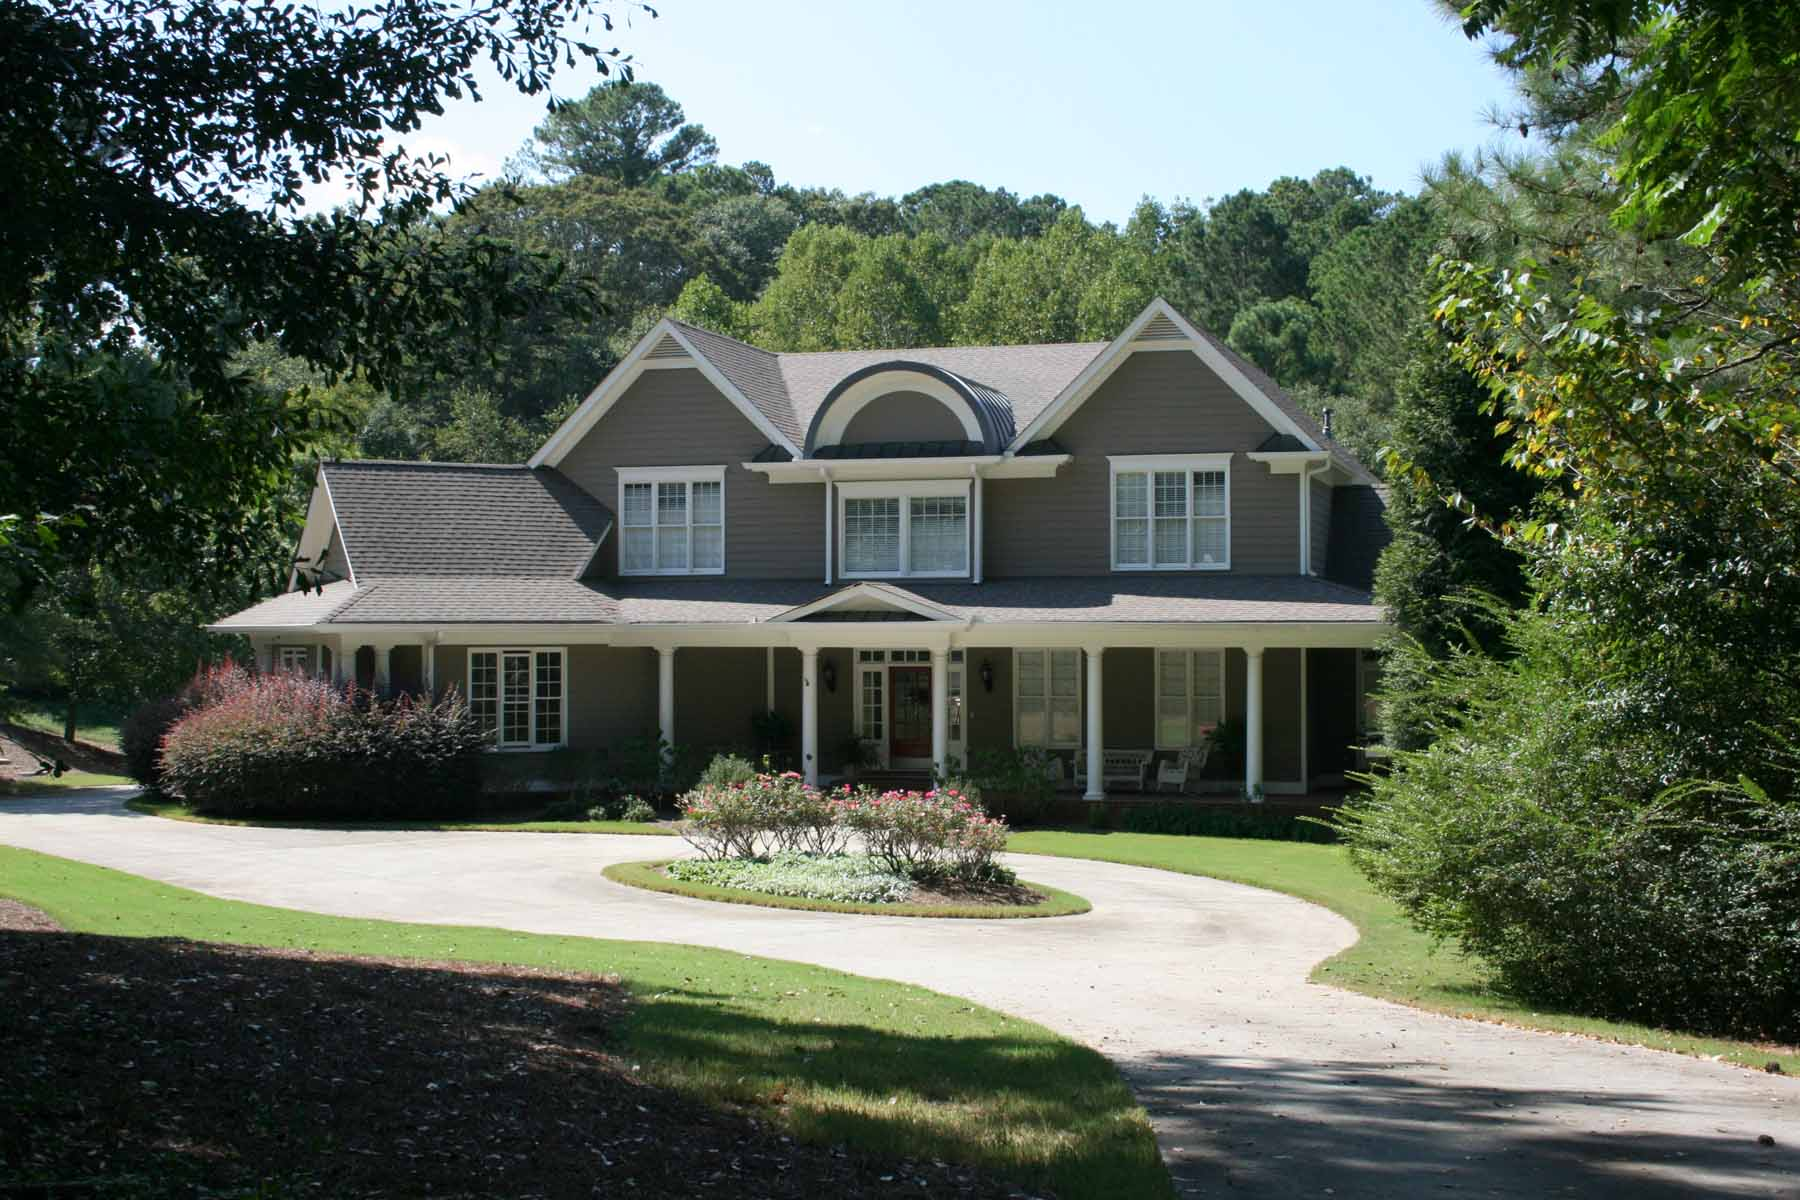 Single Family Home for Sale at Horse Farm Potential in Wonderful Milton 15330 Hopewell Road Milton, Georgia, 30004 United States